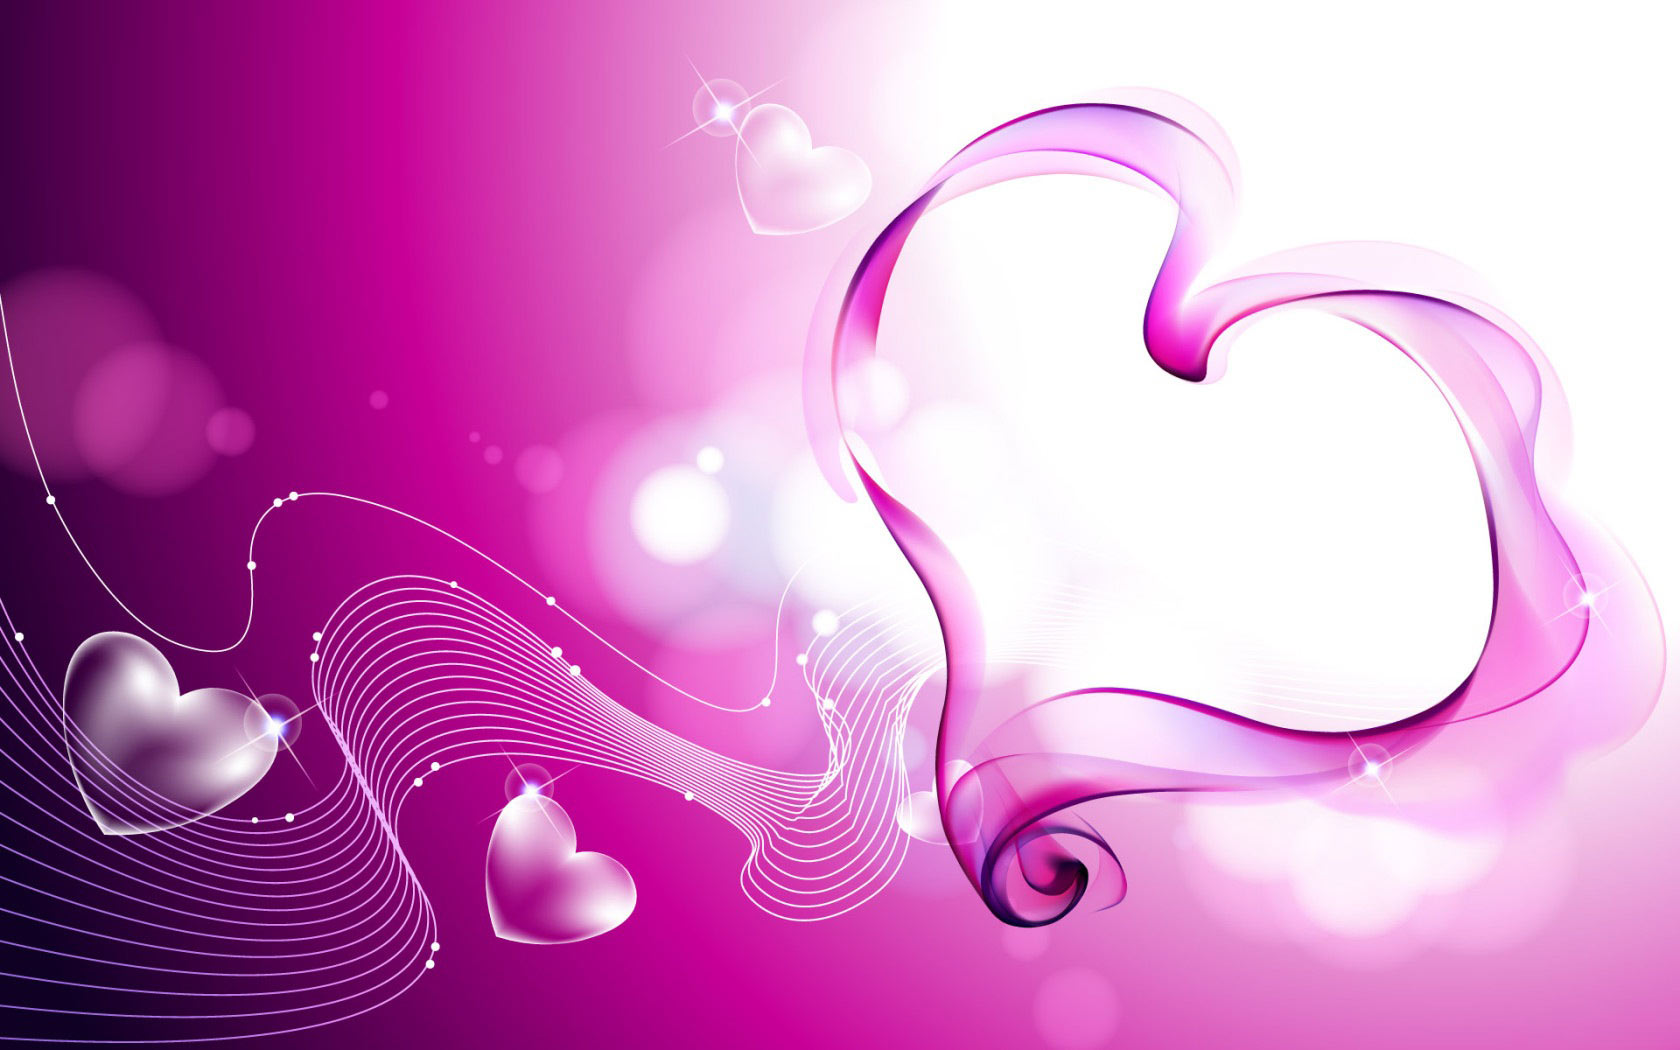 Love Wallpaper Background HD for Pc Mobile Phone Download Desktop 1680x1050